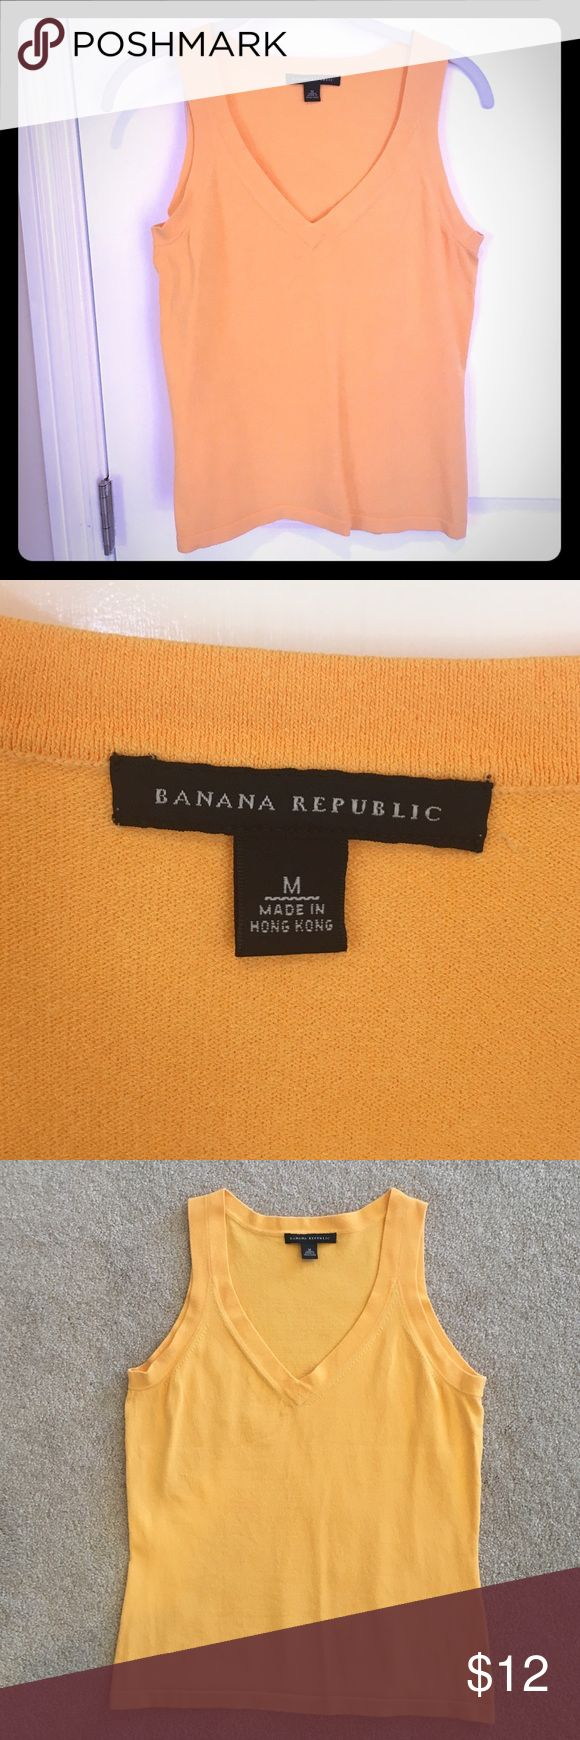 "Banana Republic Apricot Sweater Shell – sz M Beautiful light orange Banana Republic V-neck shell top in GUC. Bought from BR a few years ago and thanks to 2 pregnancies in a row, my boobs are now too big for this top! 15"" bust, 14 1/2"" waist, 22"" from shoulder to bottom.  Measurements taken when laid flat. I chose not to buy the sweater when I bought the shell, but maybe sweater is being poshed here as well! No trades! Offers always considered! Questions? Ask away! Banana Republic Tops"